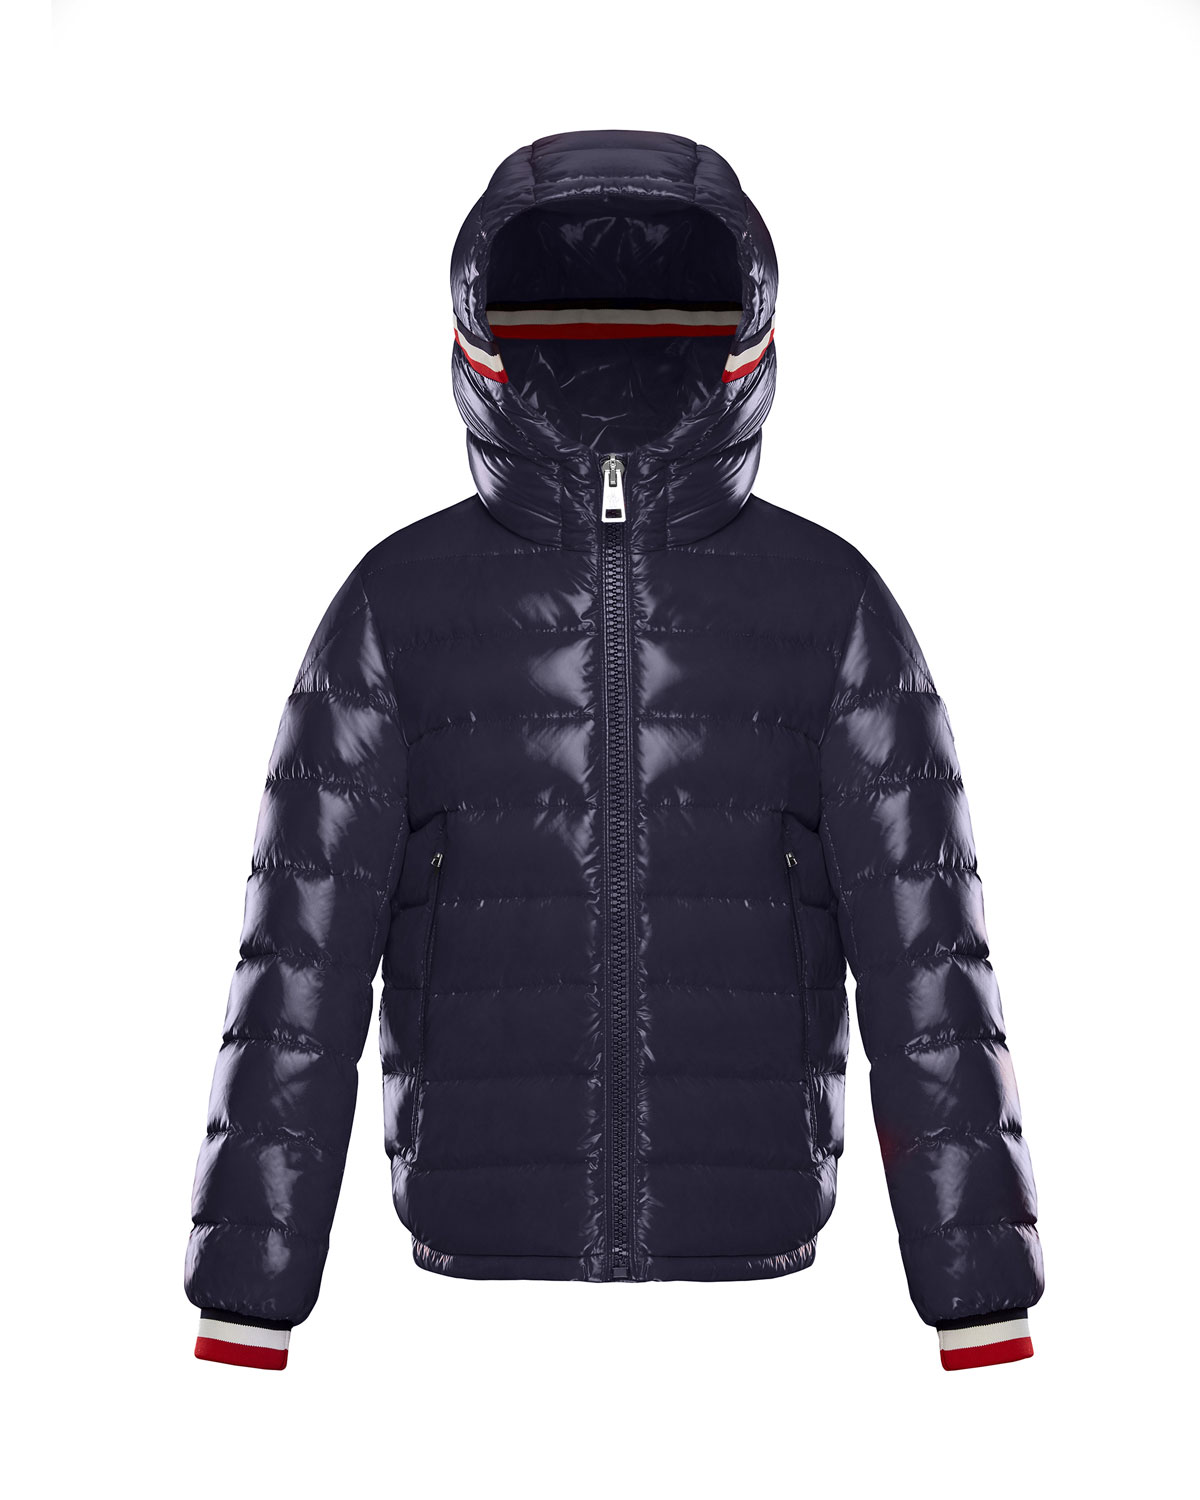 5e52f40aae5a Moncler Alberic Puffer Jacket w  Flag Details